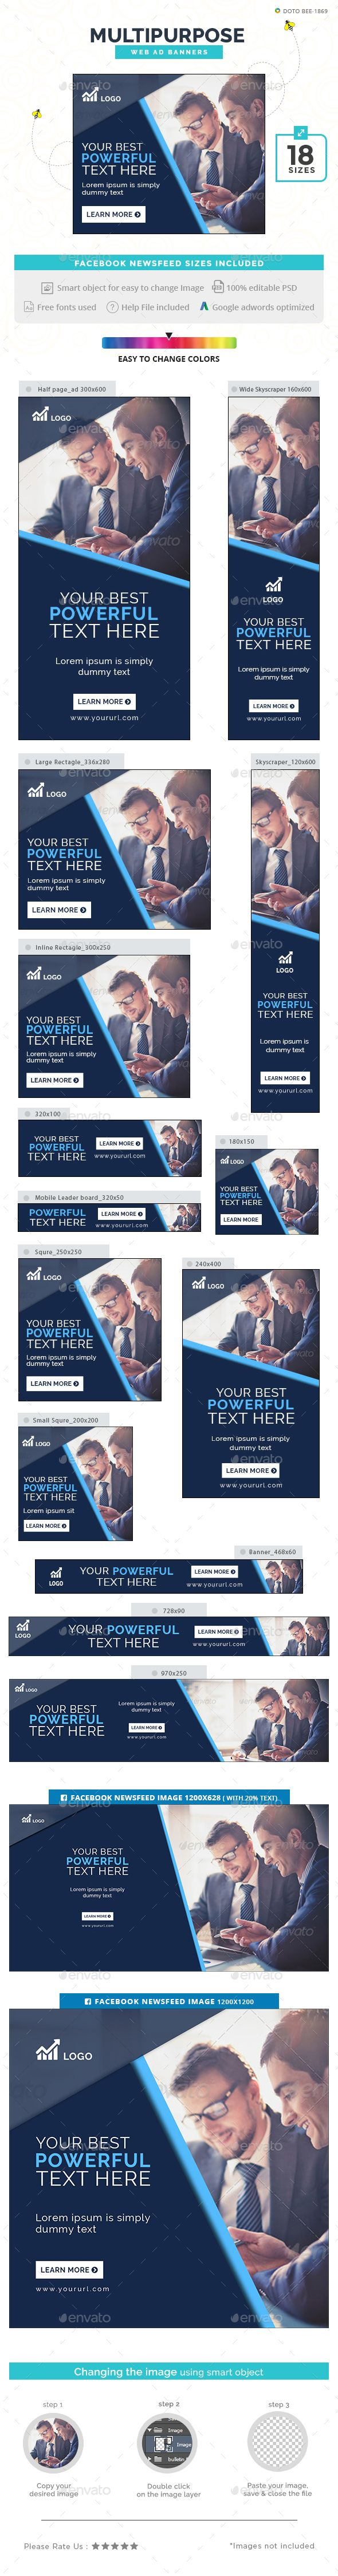 business meeting invitation email template%0A Multipurpose Banners